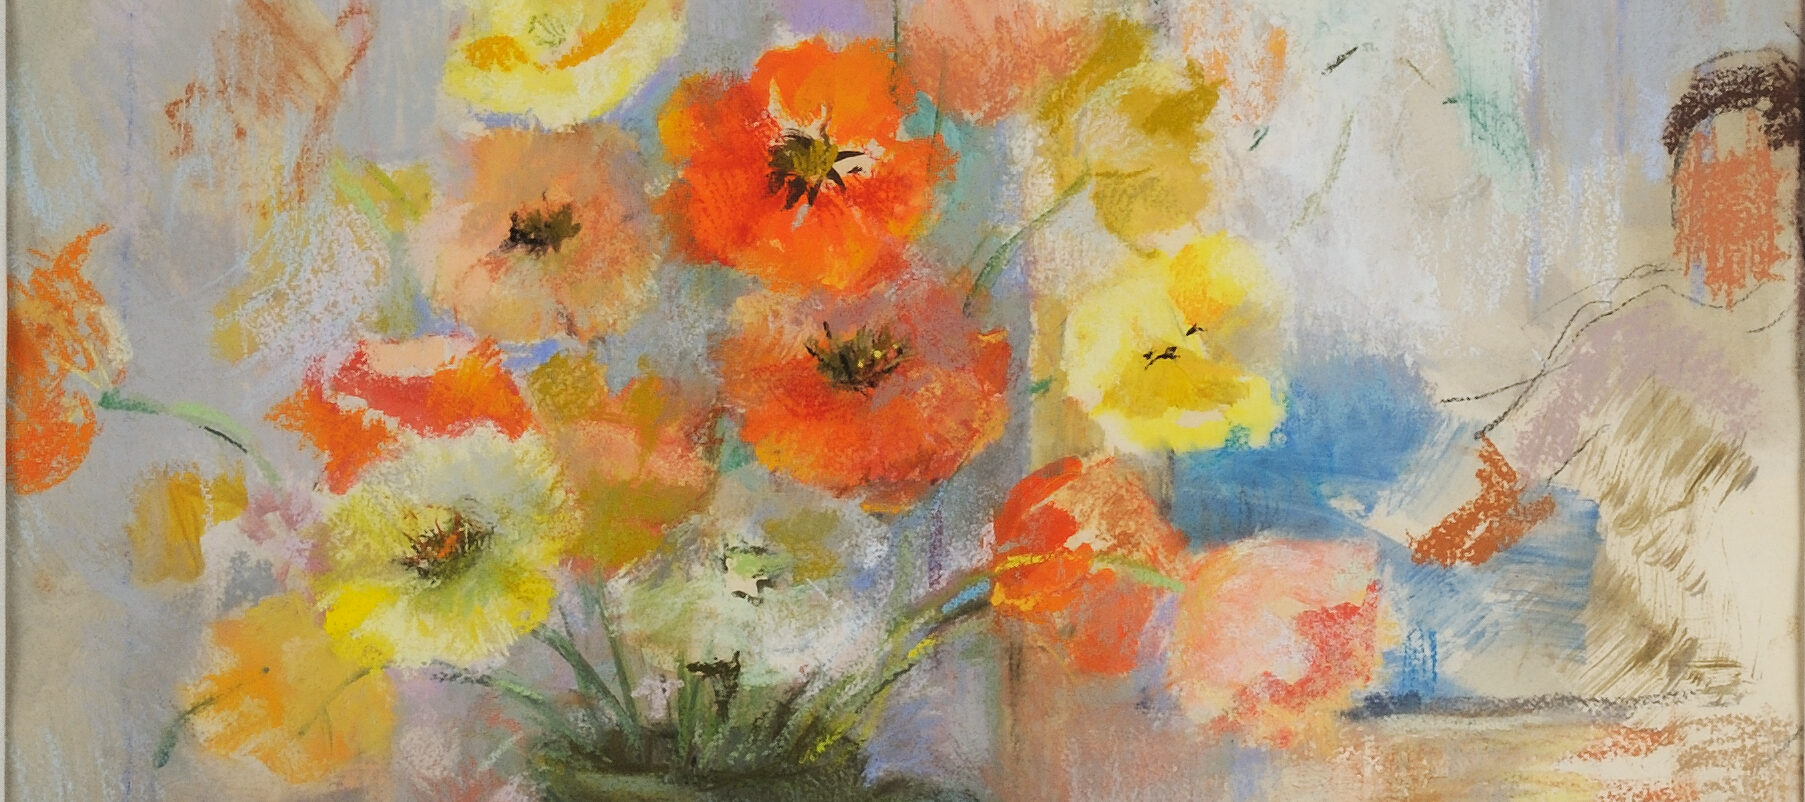 A vase of orange and yellow poppies springing from a green vase perched on a white table in front of a white wall and window. The depiction is a little blurry and Impressionist.